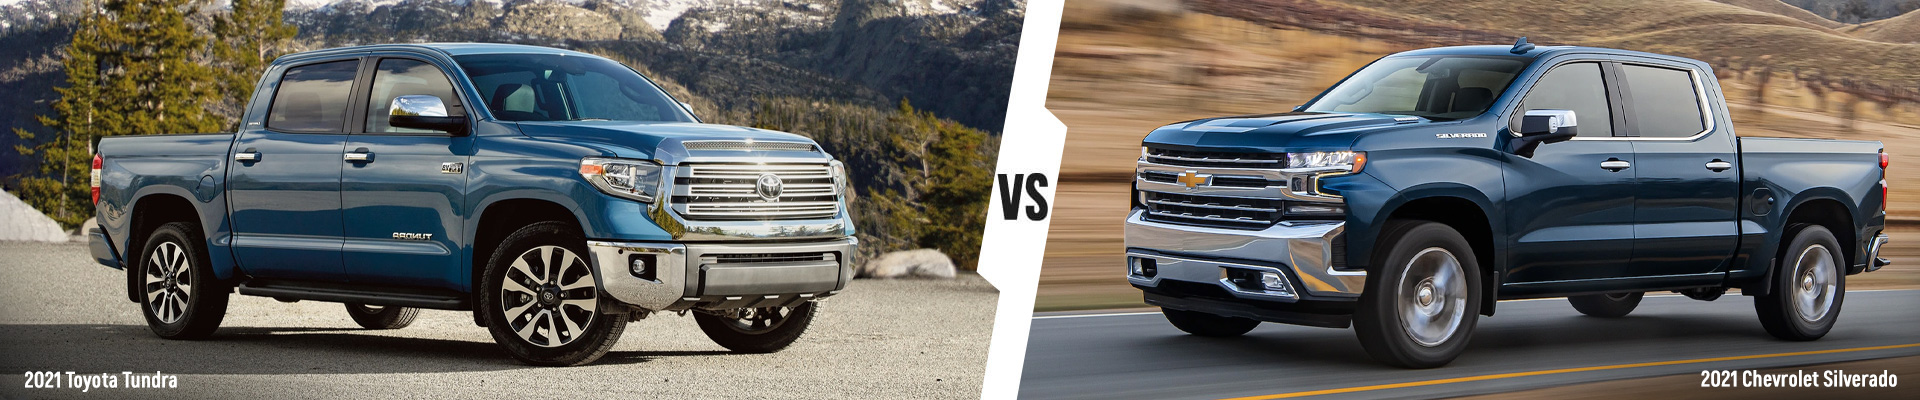 Comparing the 2021 Chevrolet Silverado 1500 & 2021 Toyota Tundra Trucks